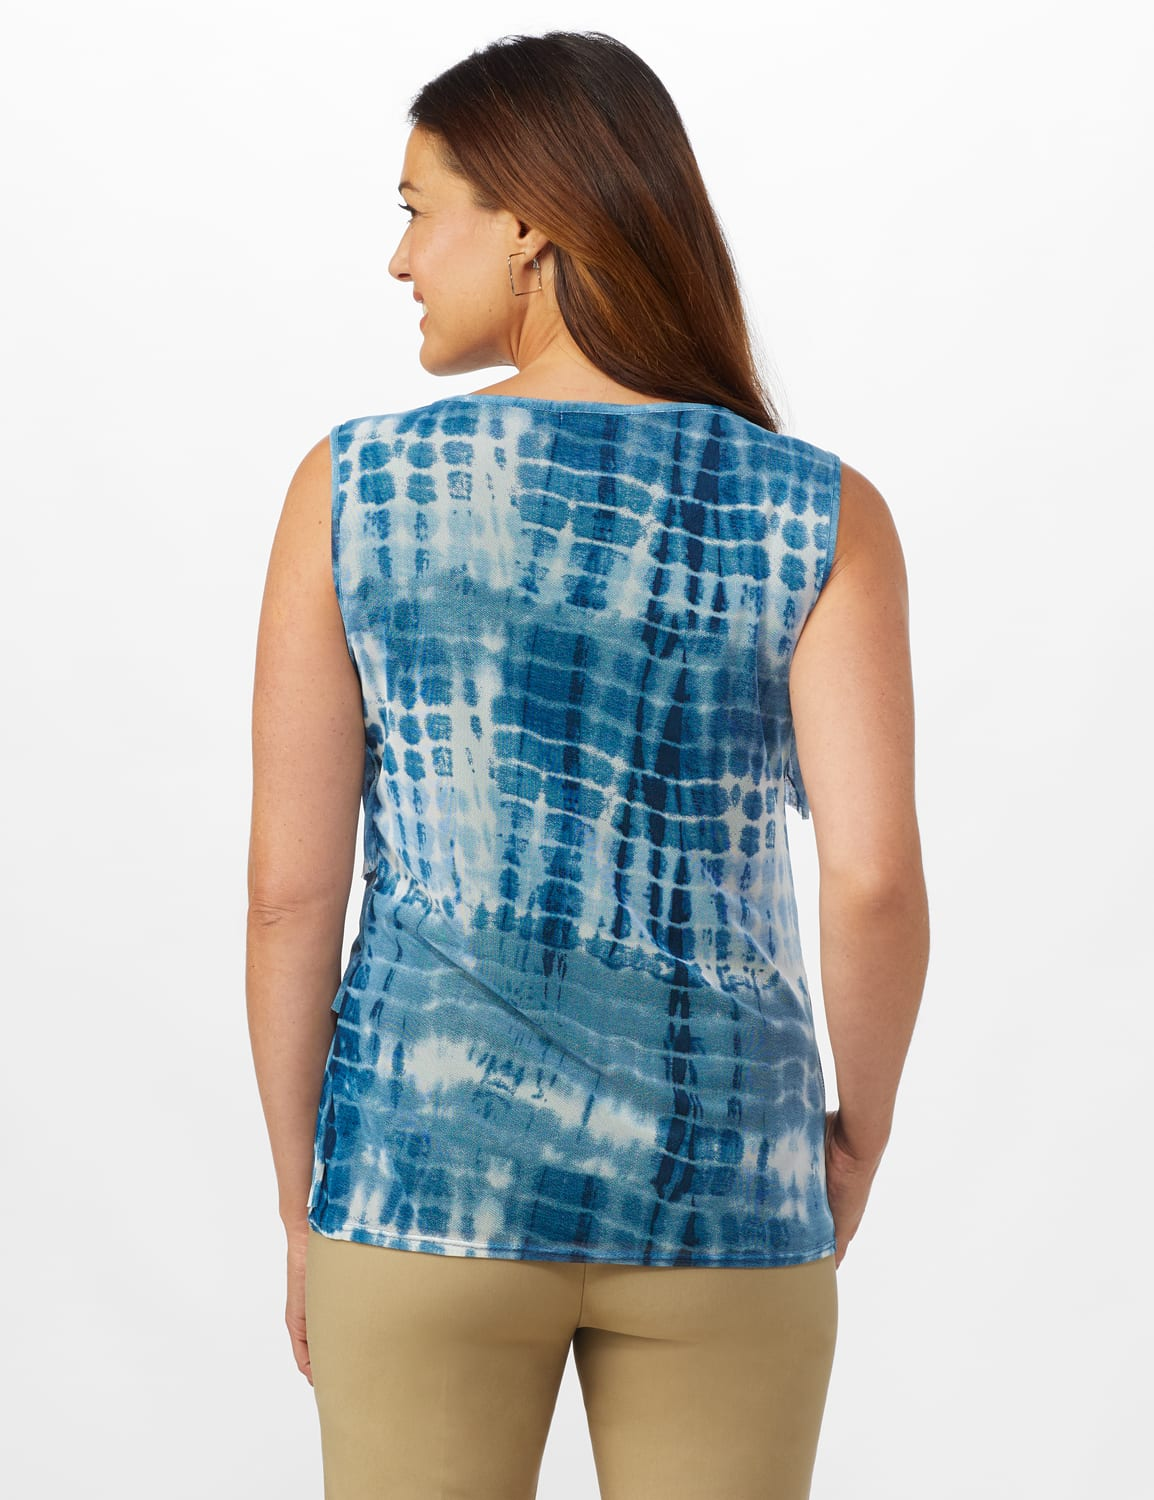 Tie Dye Mesh Tier Knit Top - Navy - Back